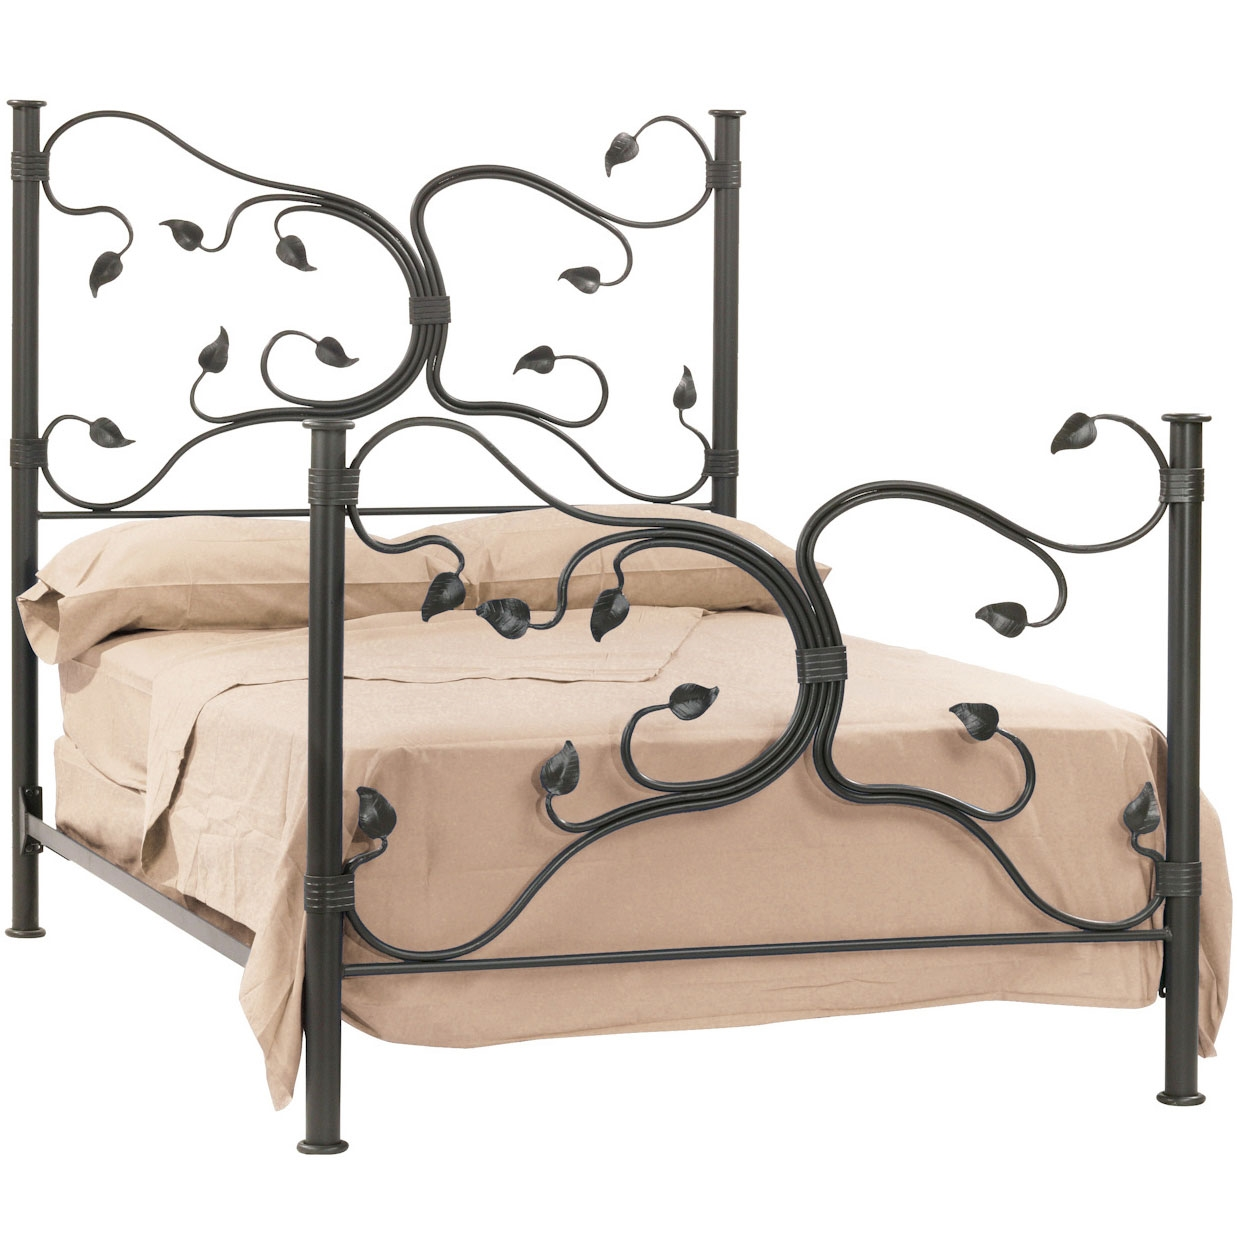 Metal Bed Headboards Eden Isle Headboard